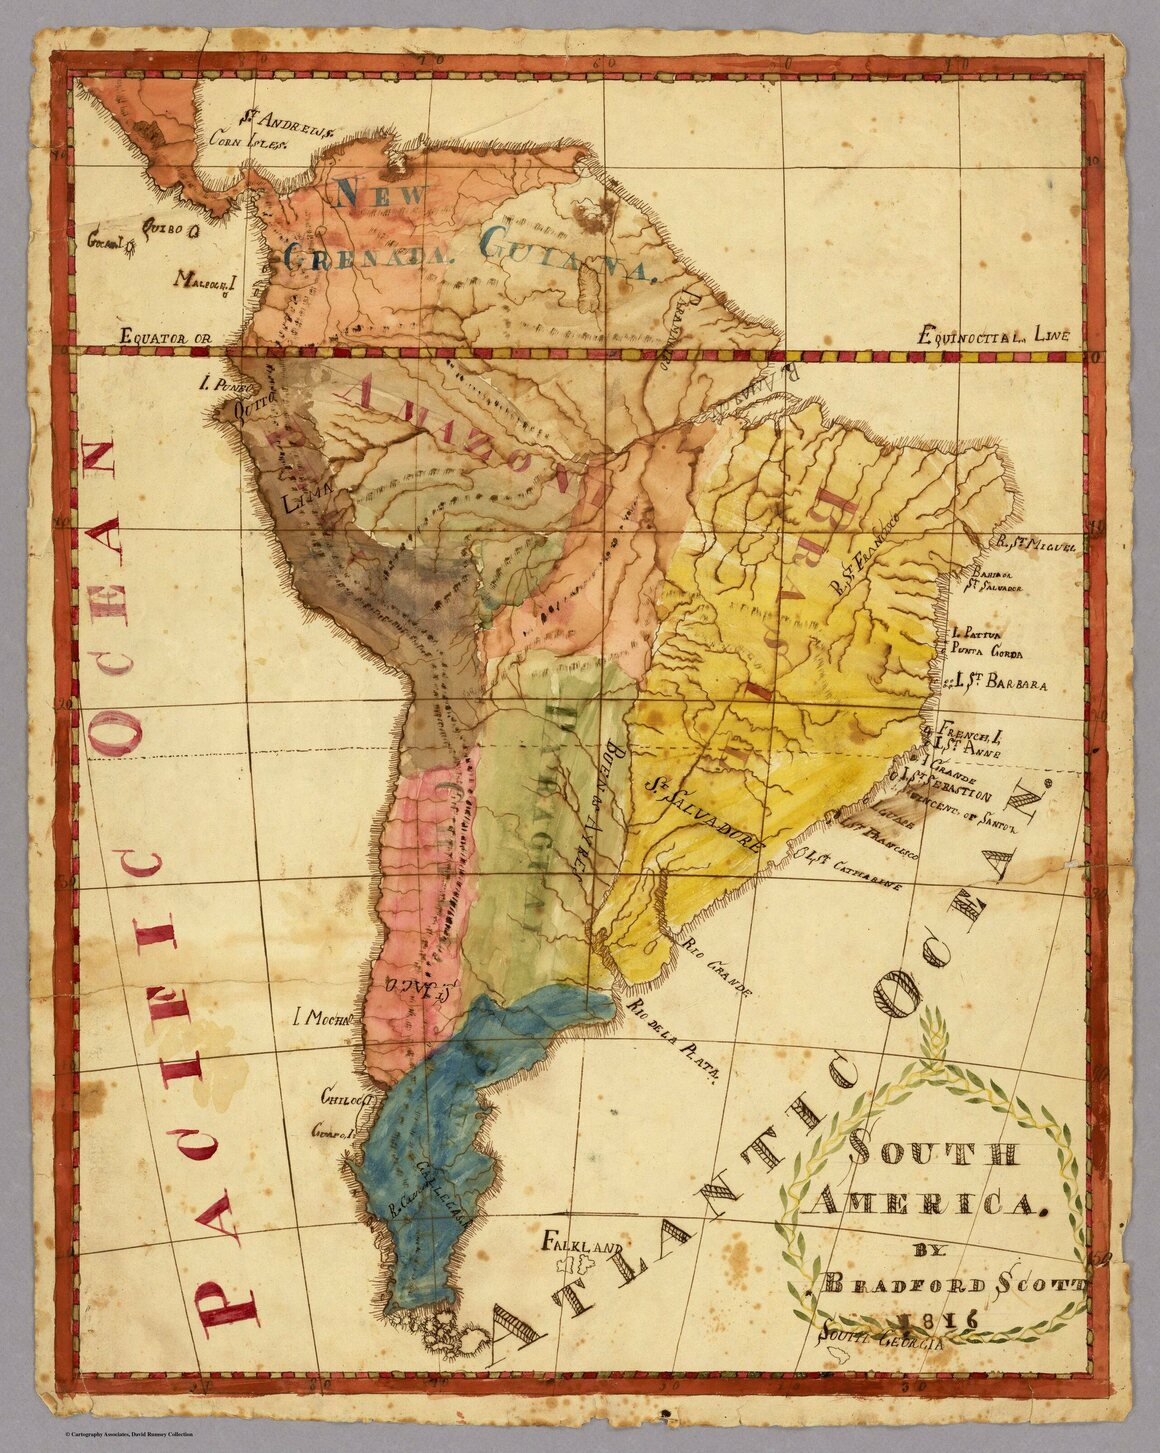 A map of South America, by Bradford Scott, from 1816.